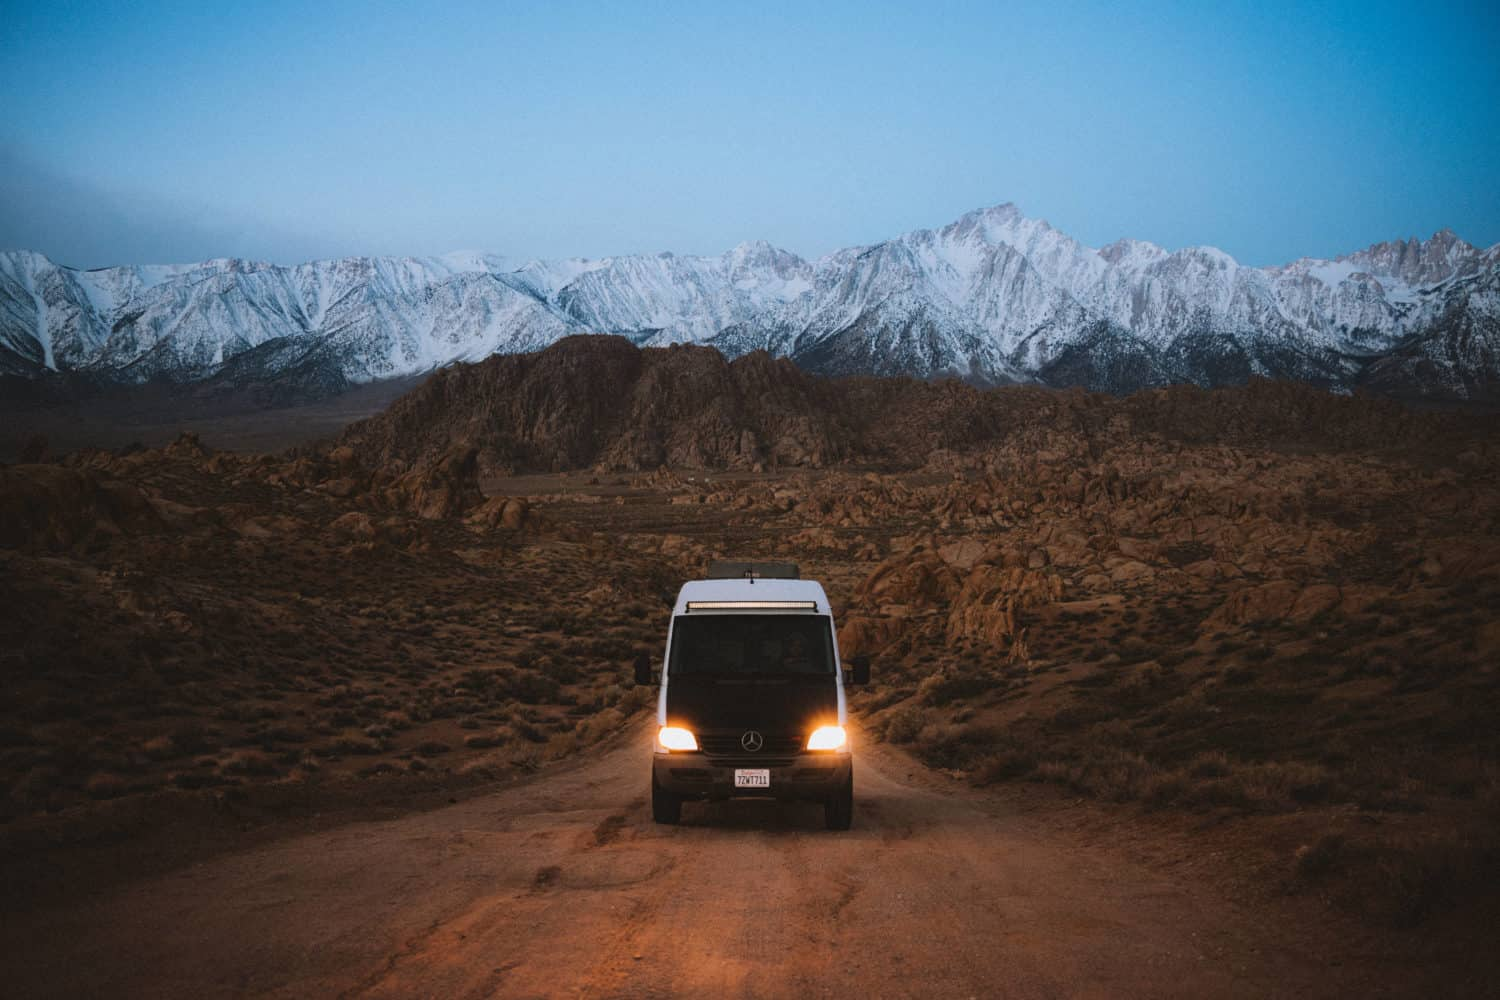 Driving Van on Movie Road, Alabama Hills with Canon EOS R